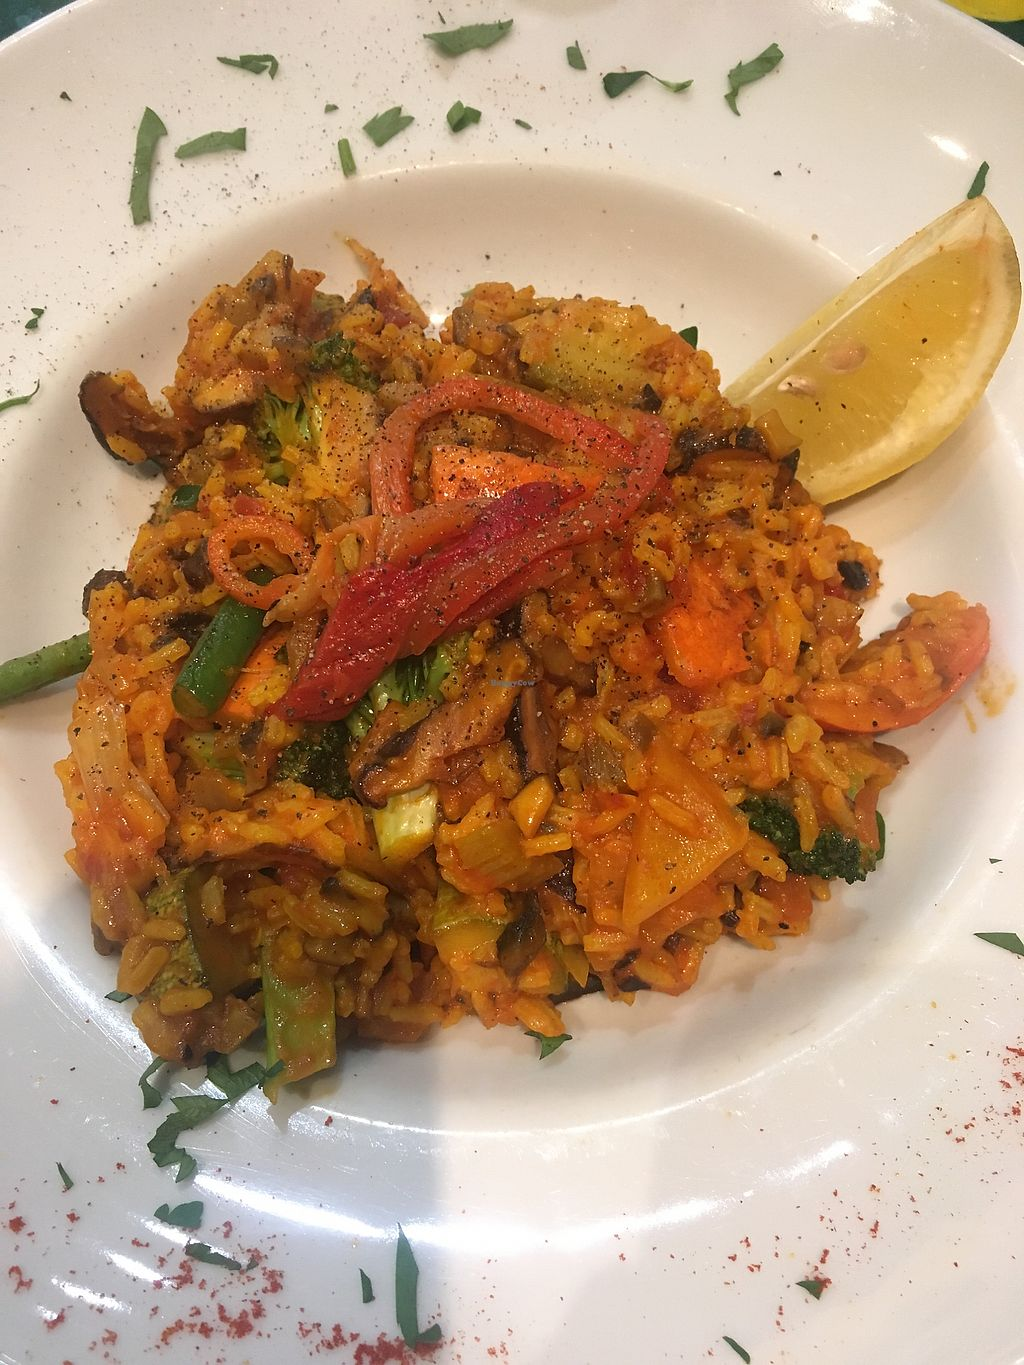 """Photo of Avocado  by <a href=""""/members/profile/Marieanne"""">Marieanne</a> <br/>Vegan paella <br/> March 24, 2018  - <a href='/contact/abuse/image/26015/375124'>Report</a>"""